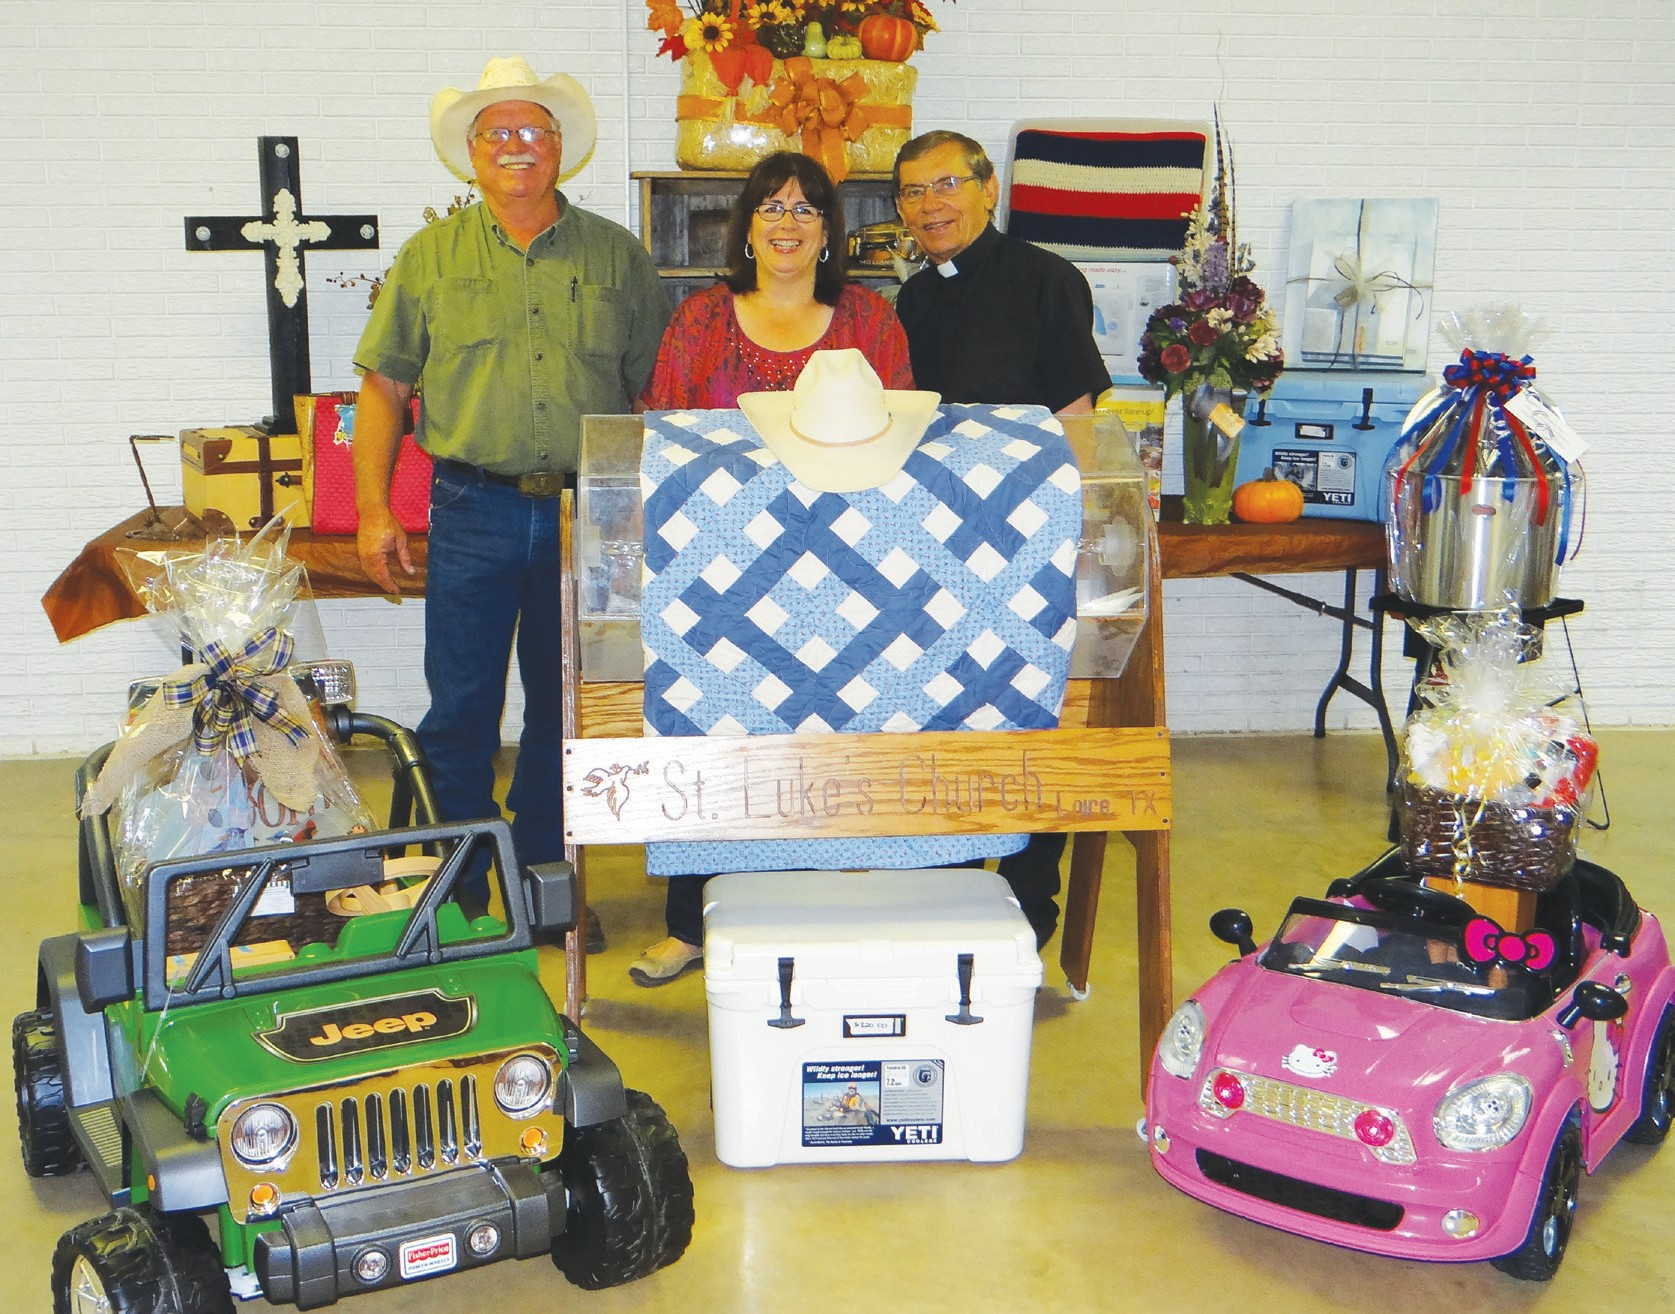 Father Stefan Wiera (right) is joined by parishioners Bill and Gail Slomchinski with items that will be featured in St. Lukes-Loire Catholic Church Fall Festival this Sunday, October 5. The barbecue and sausage dinner will be served from 11 a.m. until 2 p.m. Lots of family fun is planned, plus polka music and auction.